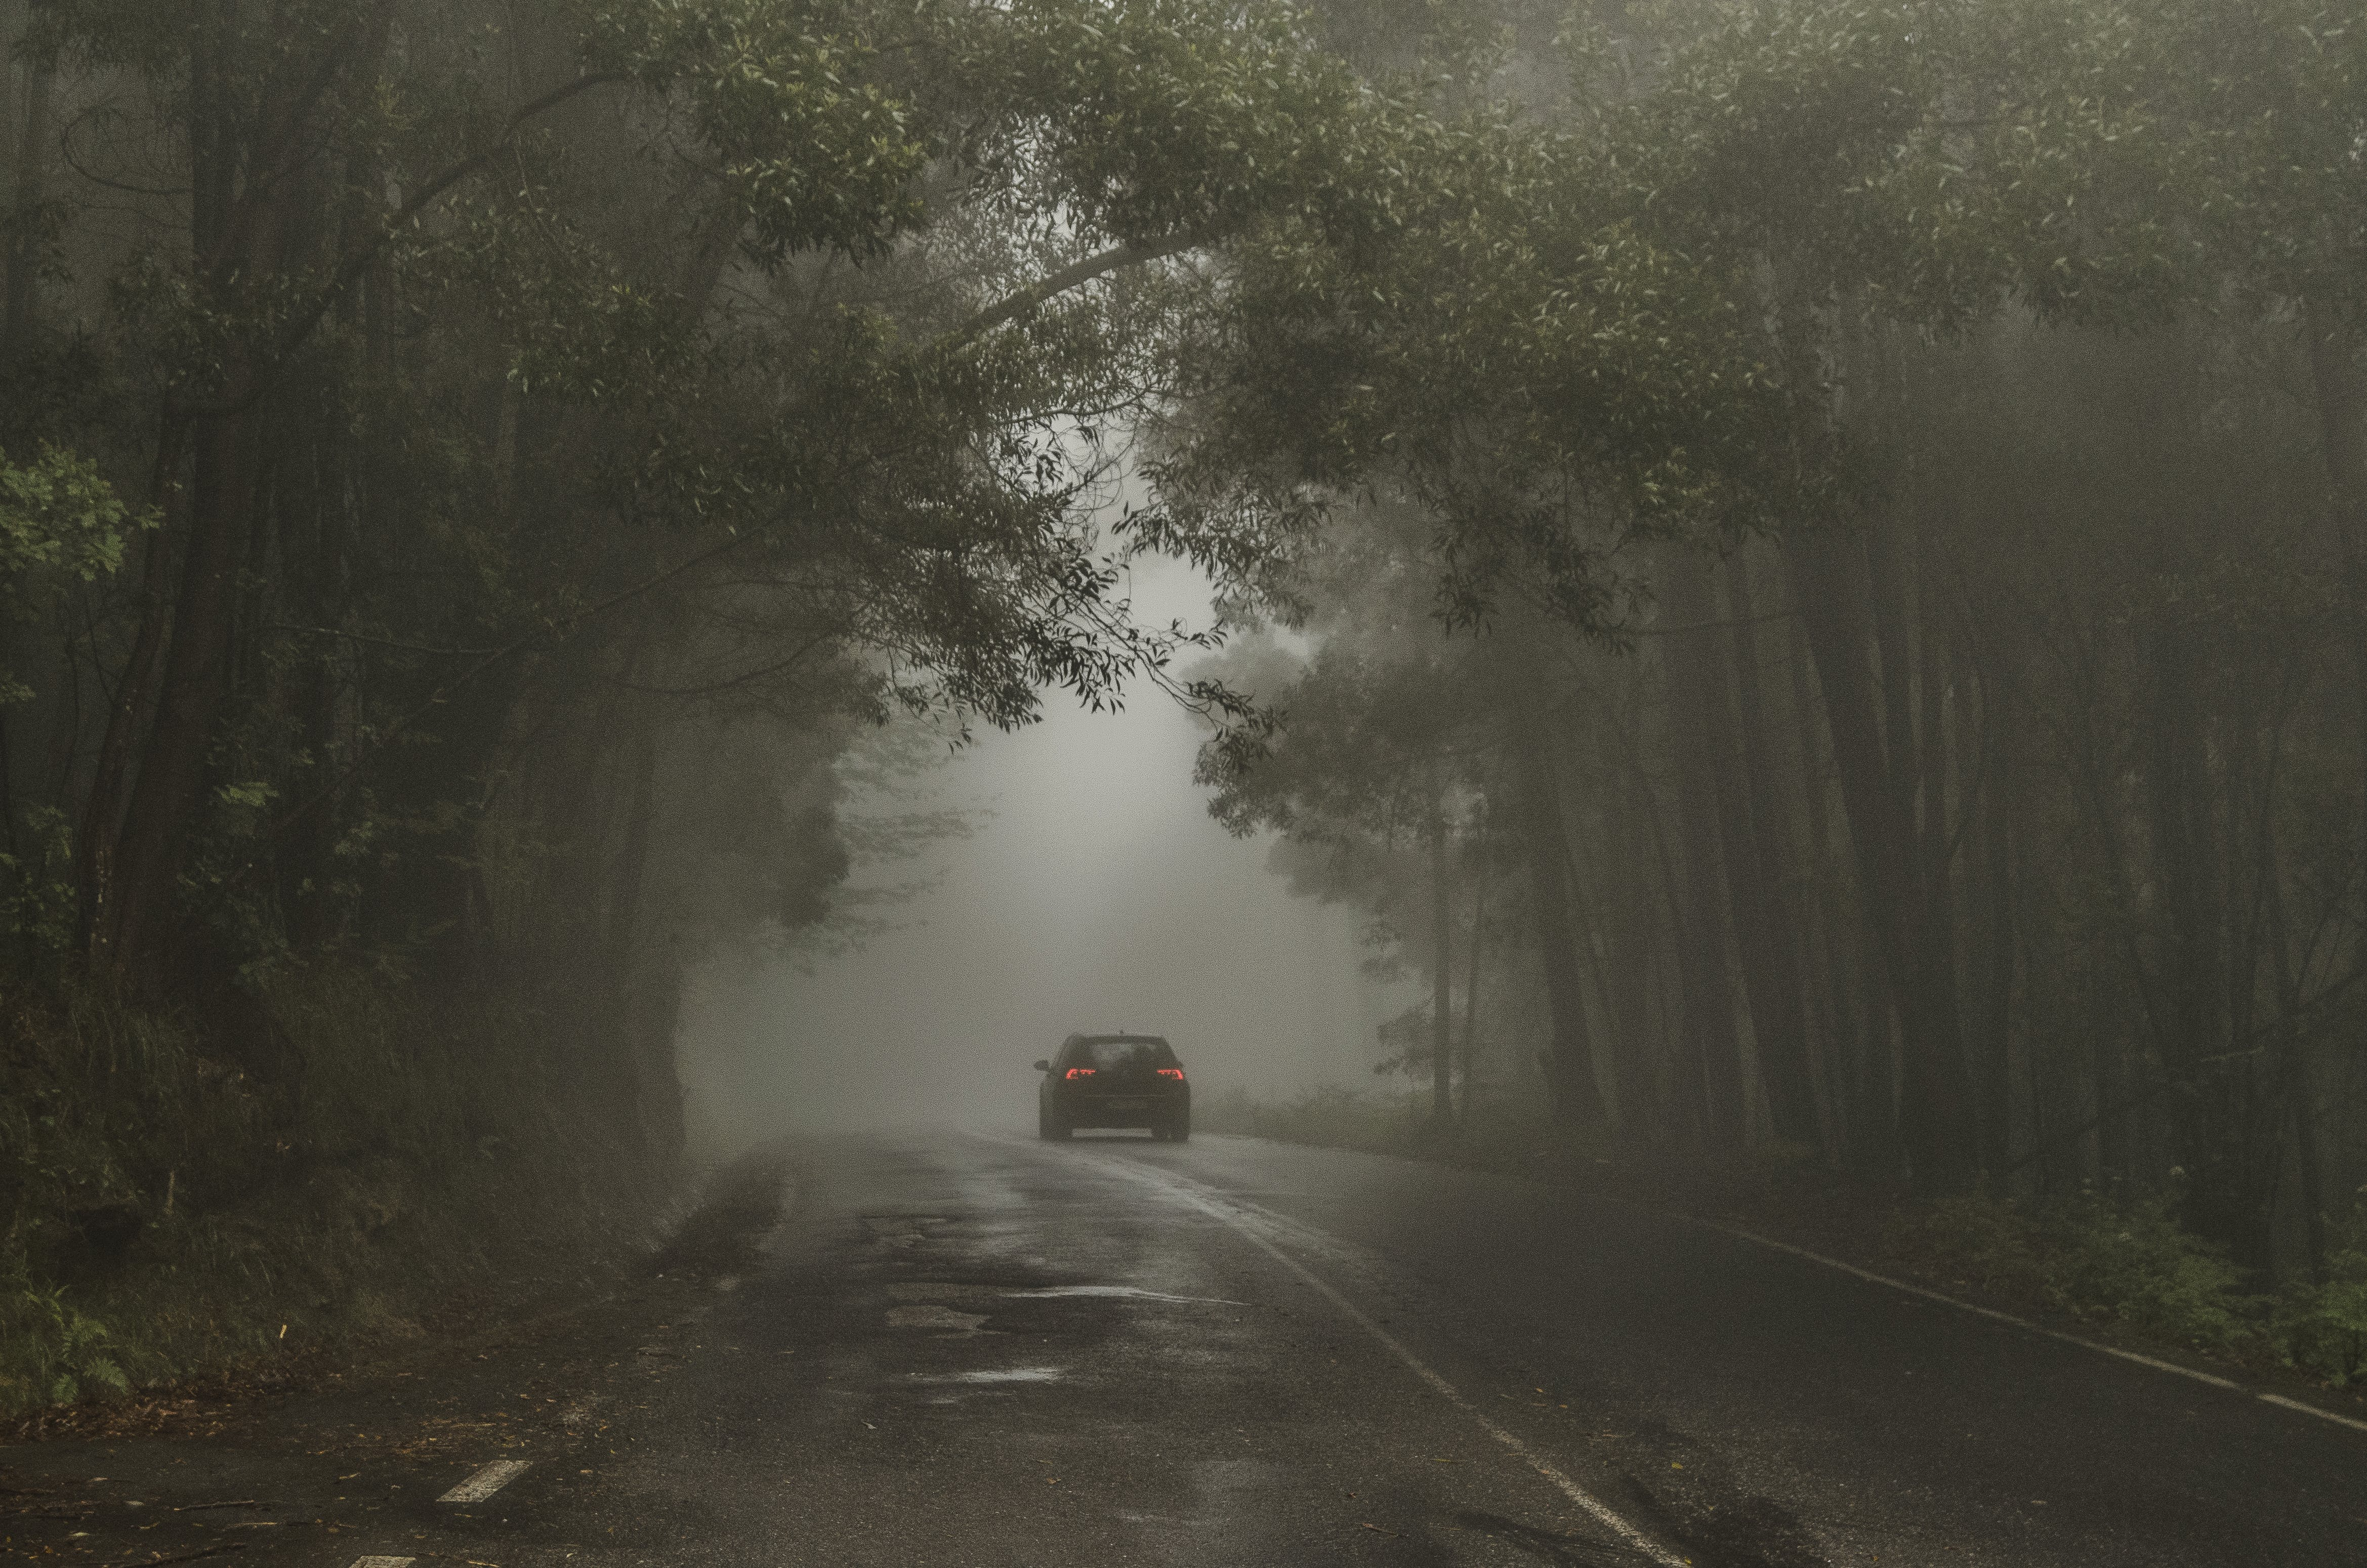 Car Passing on Road Between Trees